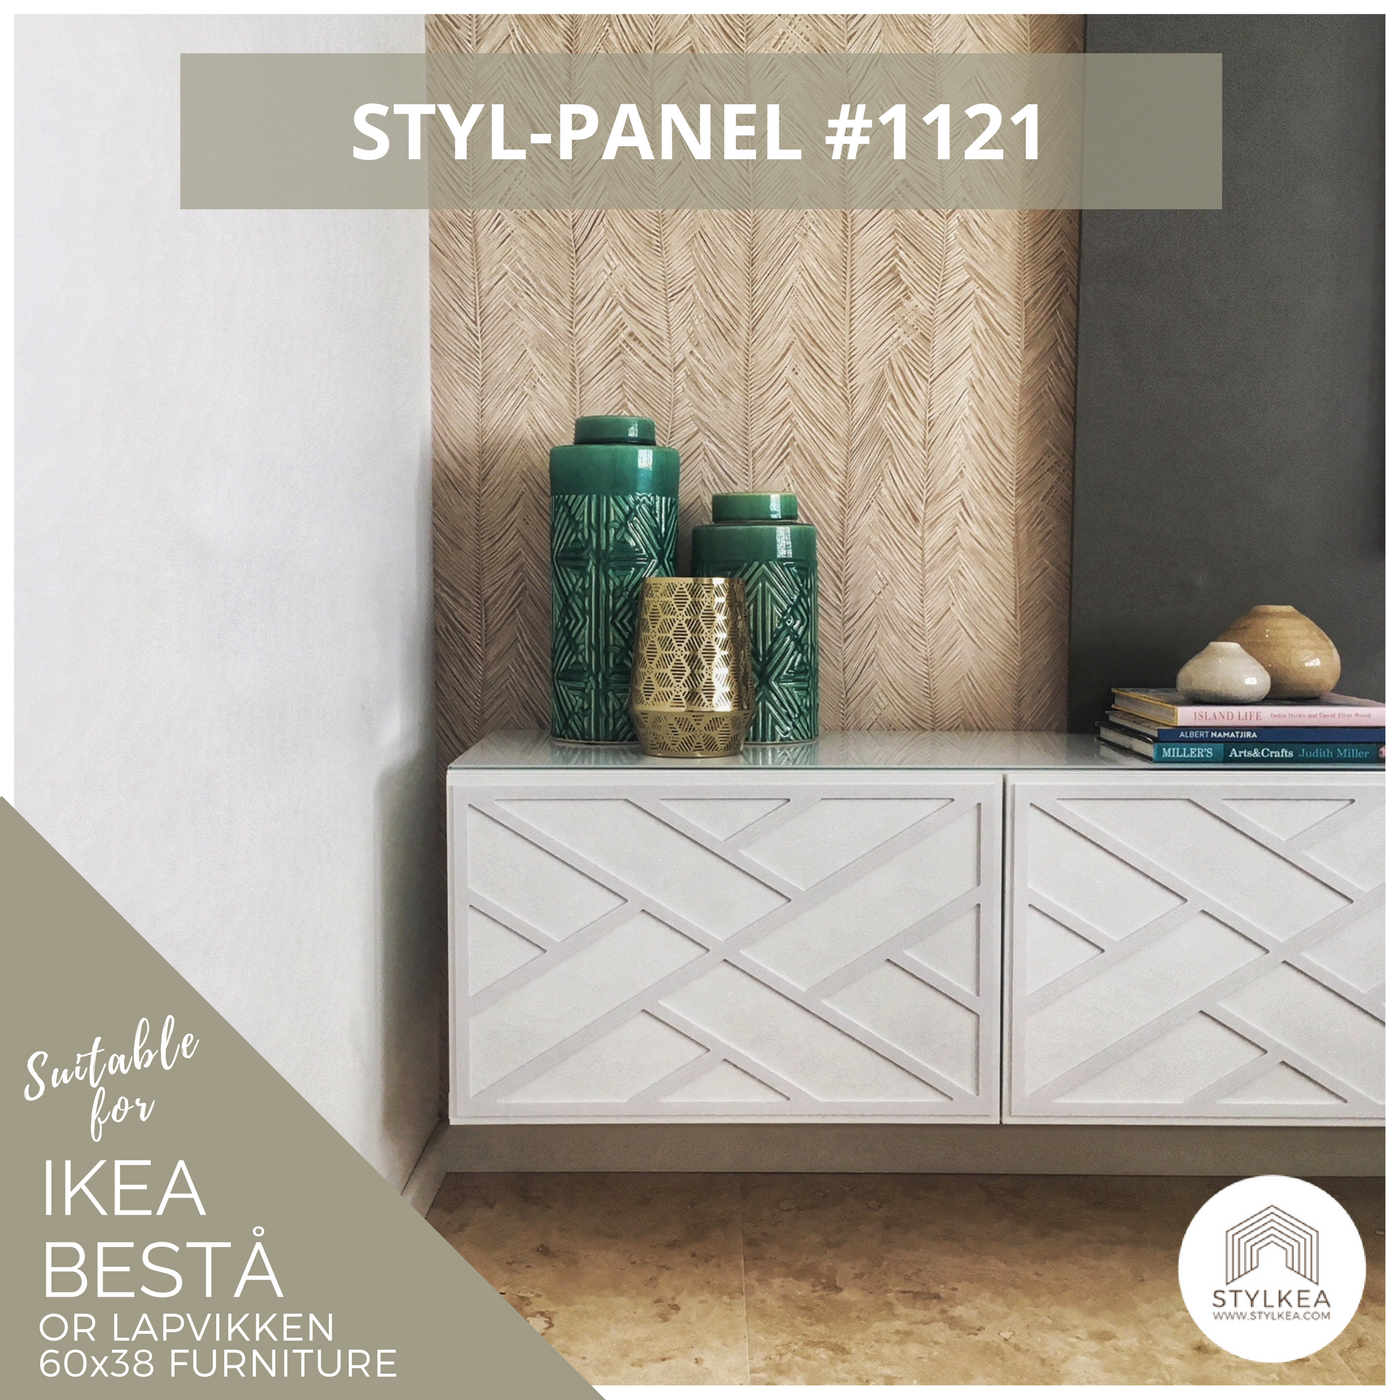 Styl Panel 1121 To Suit Ikea Besta 60x38 Furniture In 2019